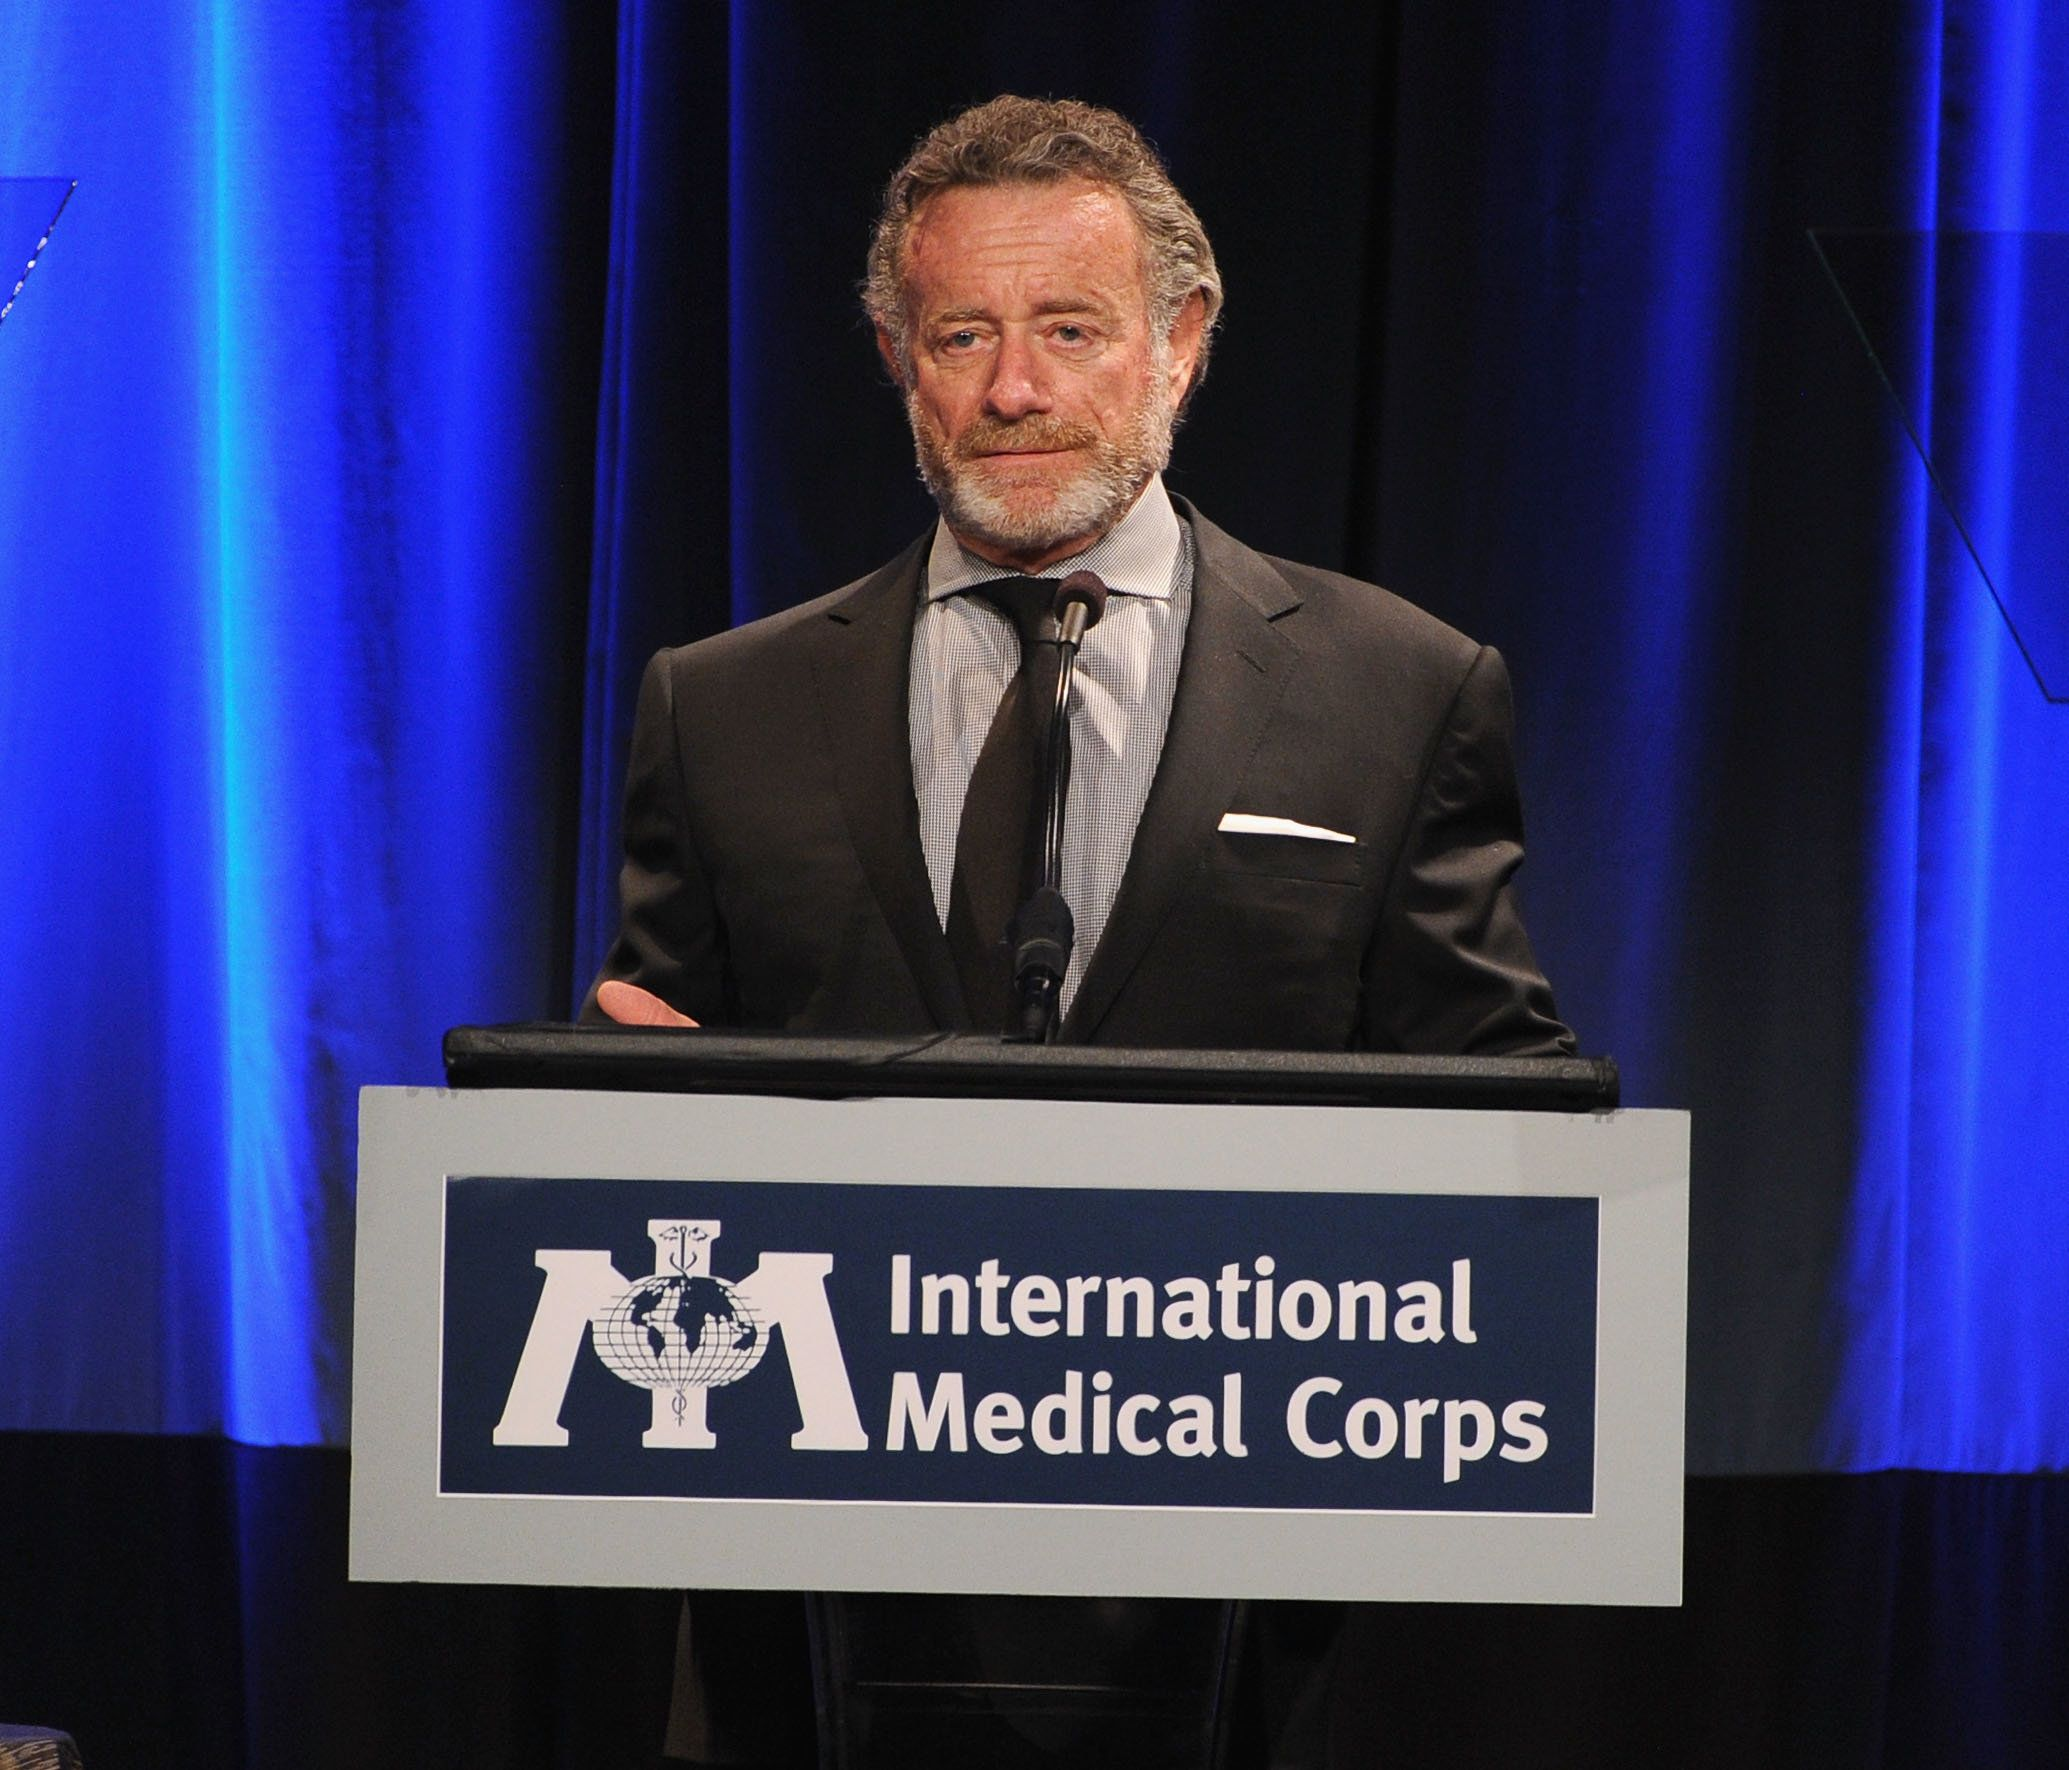 BEVERLY HILLS, CA - NOVEMBER 08:  Master of Ceremonies Jarl Mohn speaks onstage at the International Medical Corps Annual Awards Celebration at Regent Beverly Wilshire Hotel on November 8, 2013 in Beverly Hills, California.  (Photo by Kevin Winter/Getty Images for International Medical Corps)